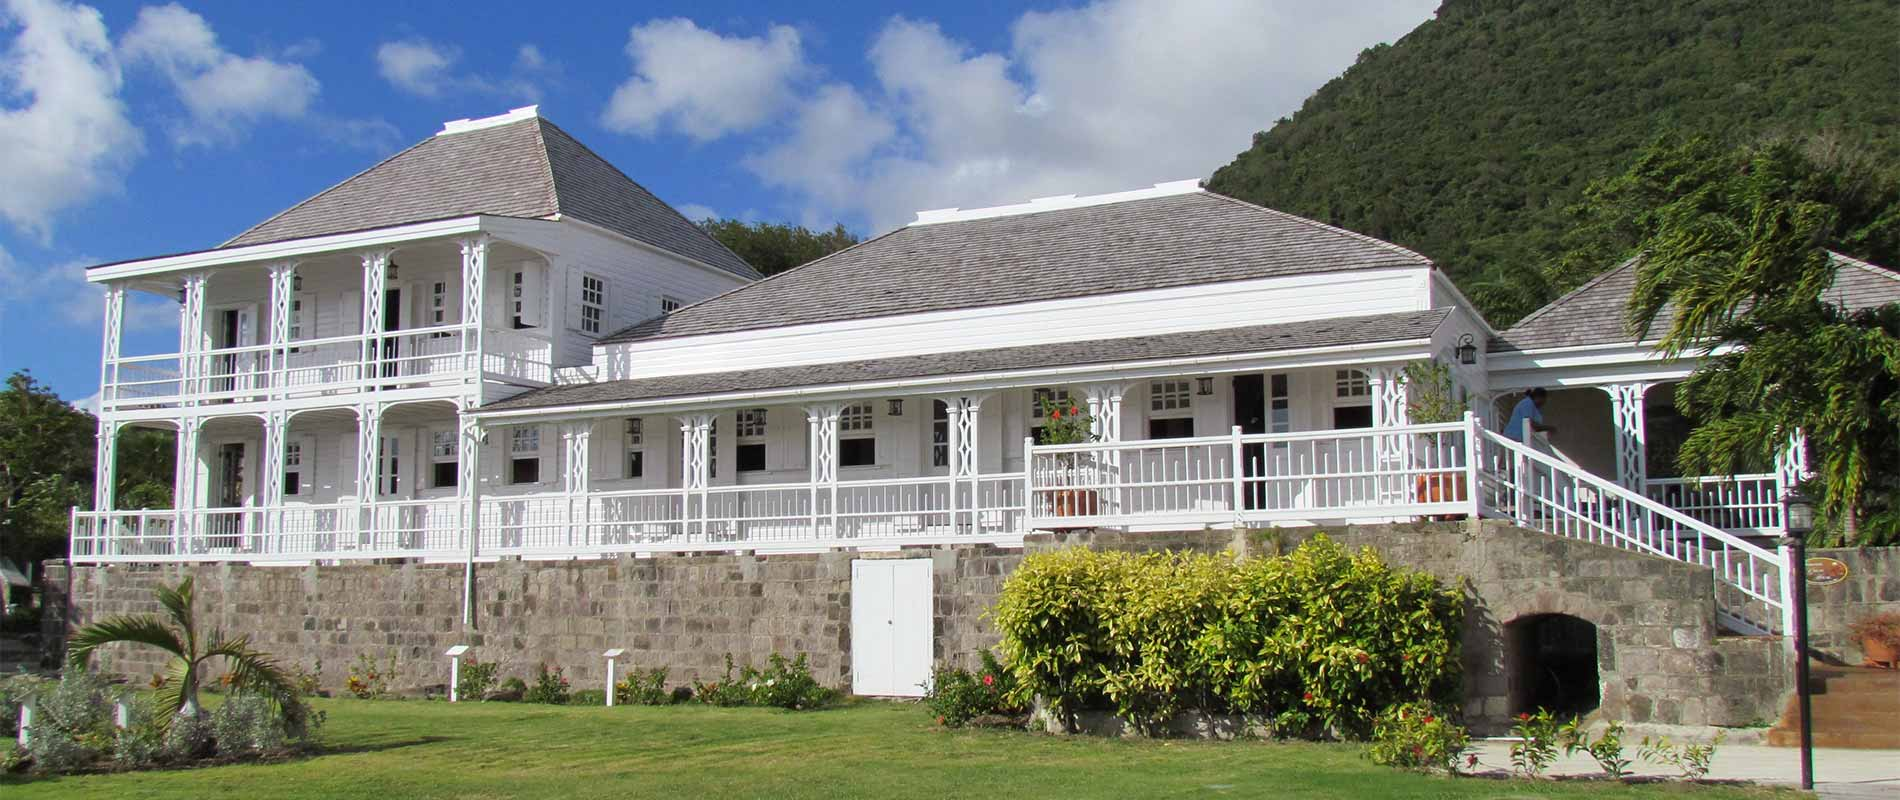 Fairview great house St Kitts